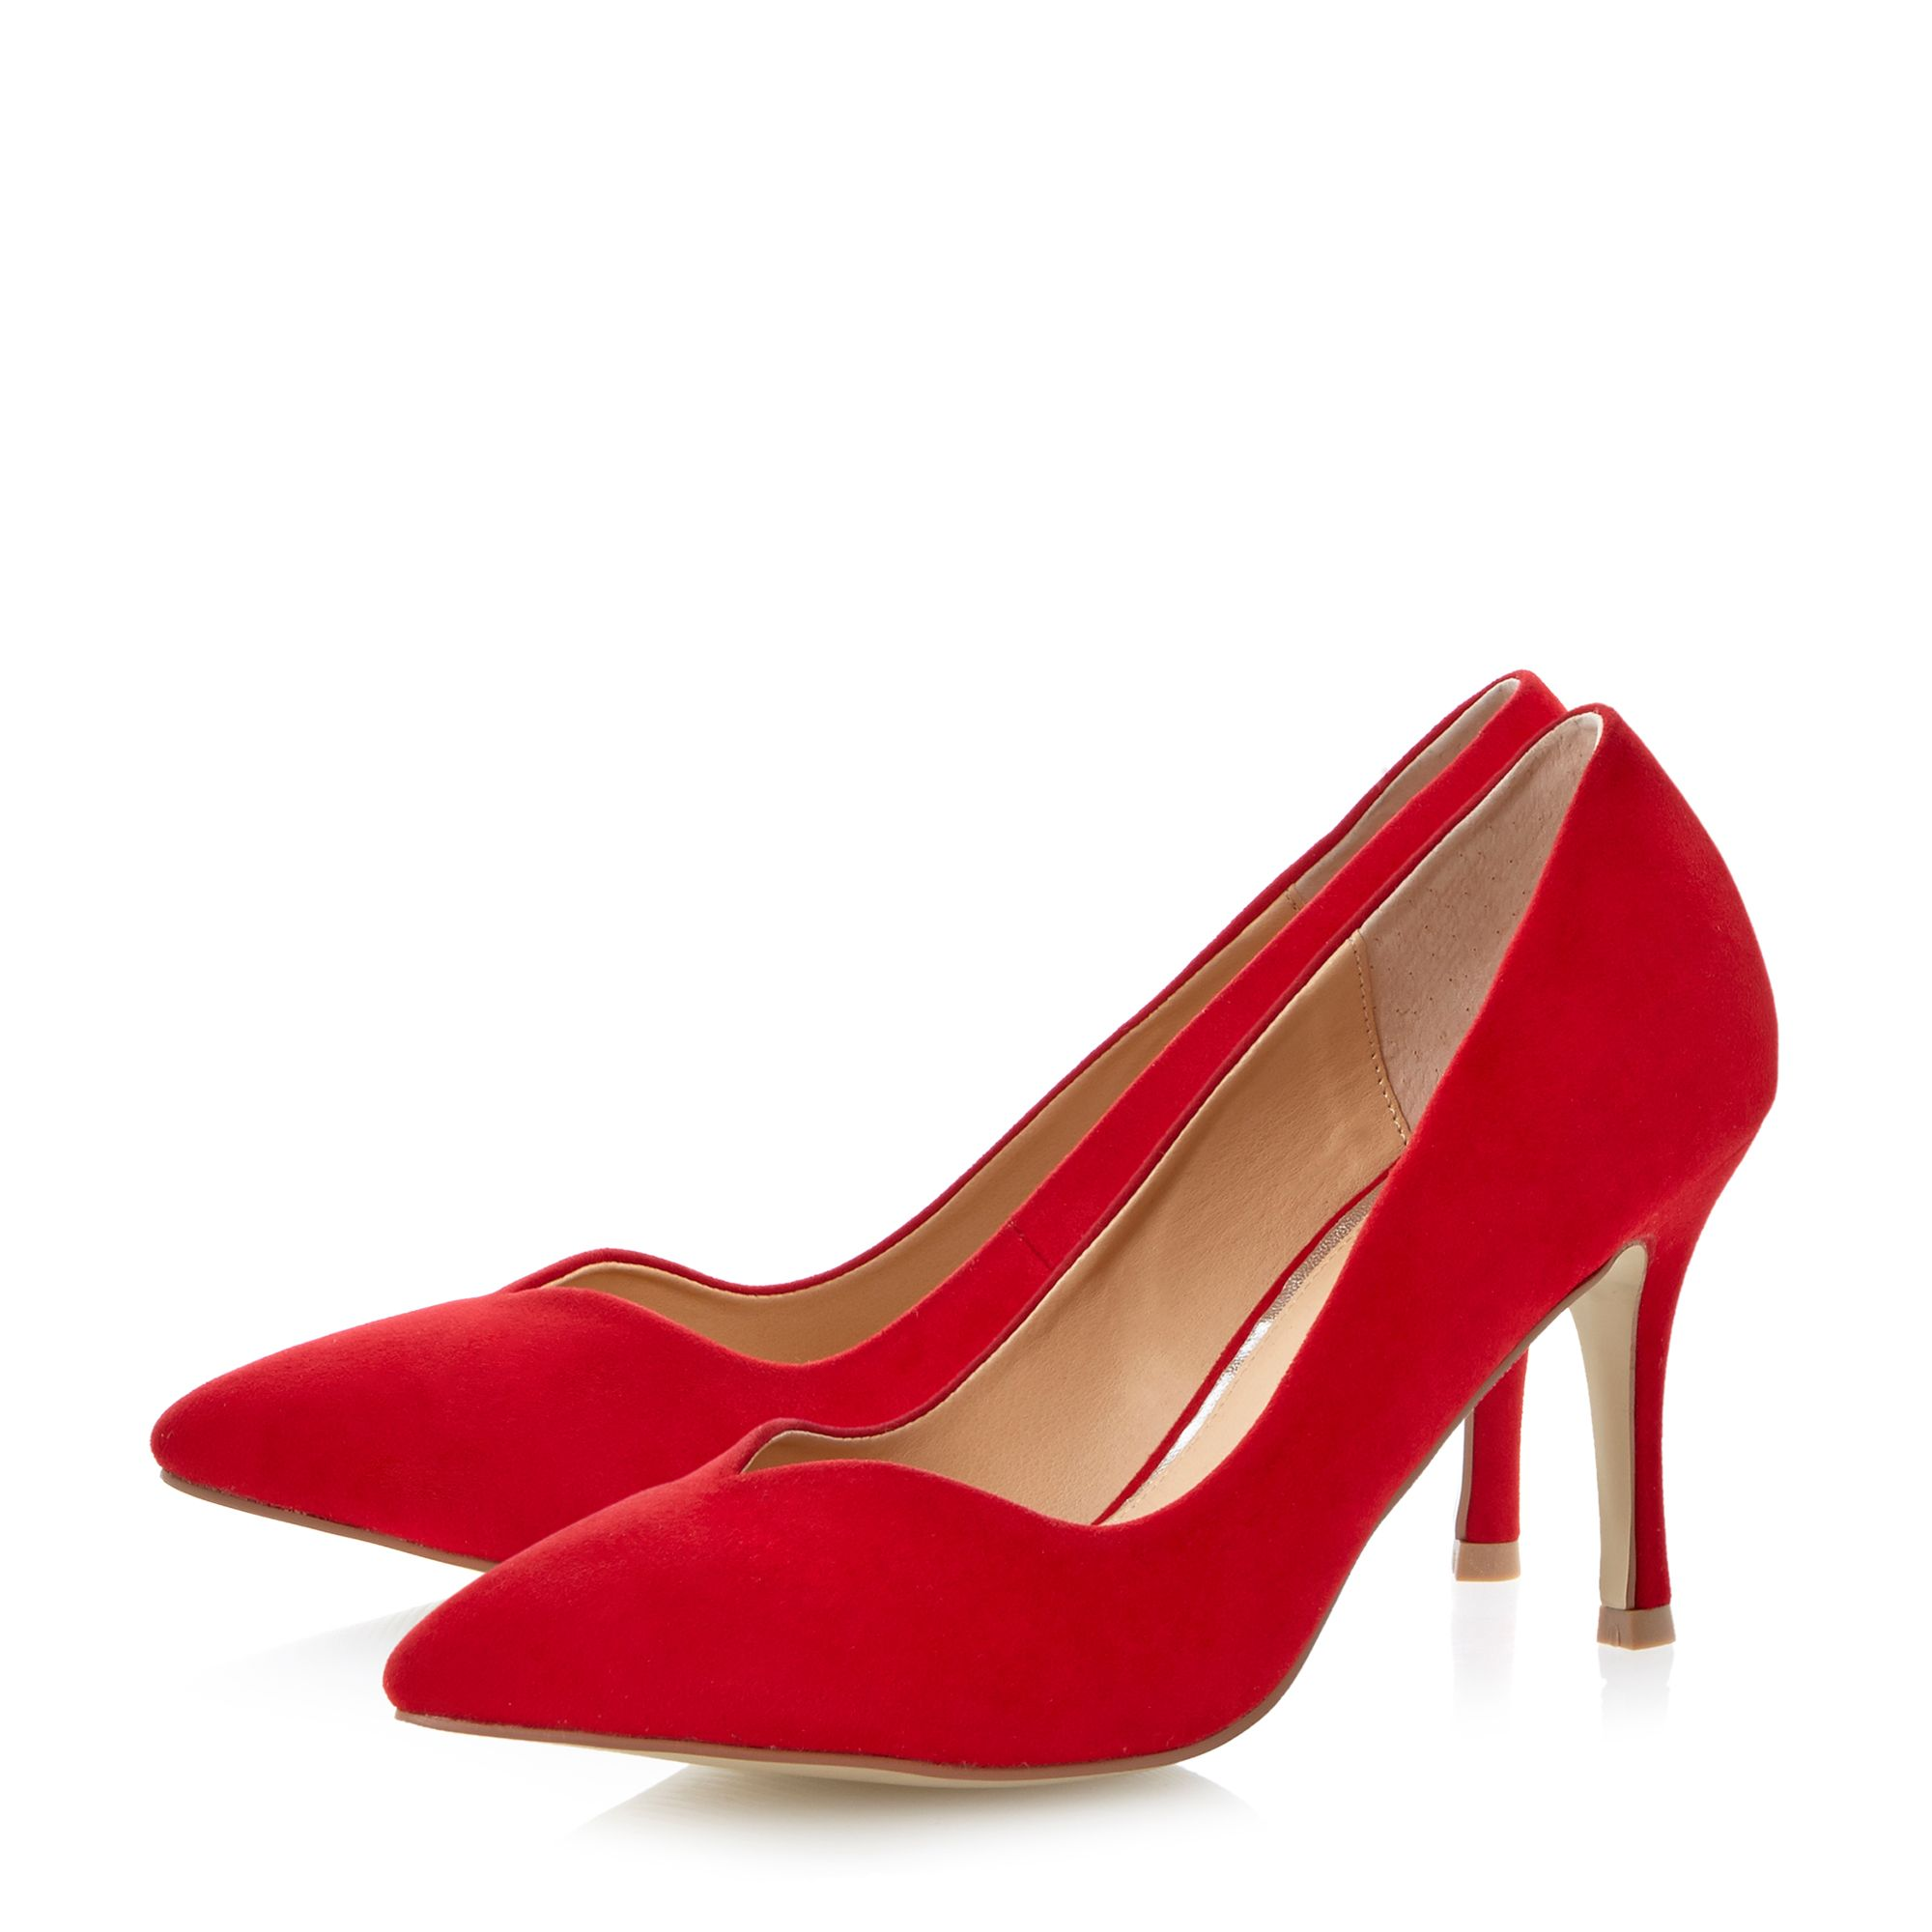 Applejack pointed mid heel court shoes